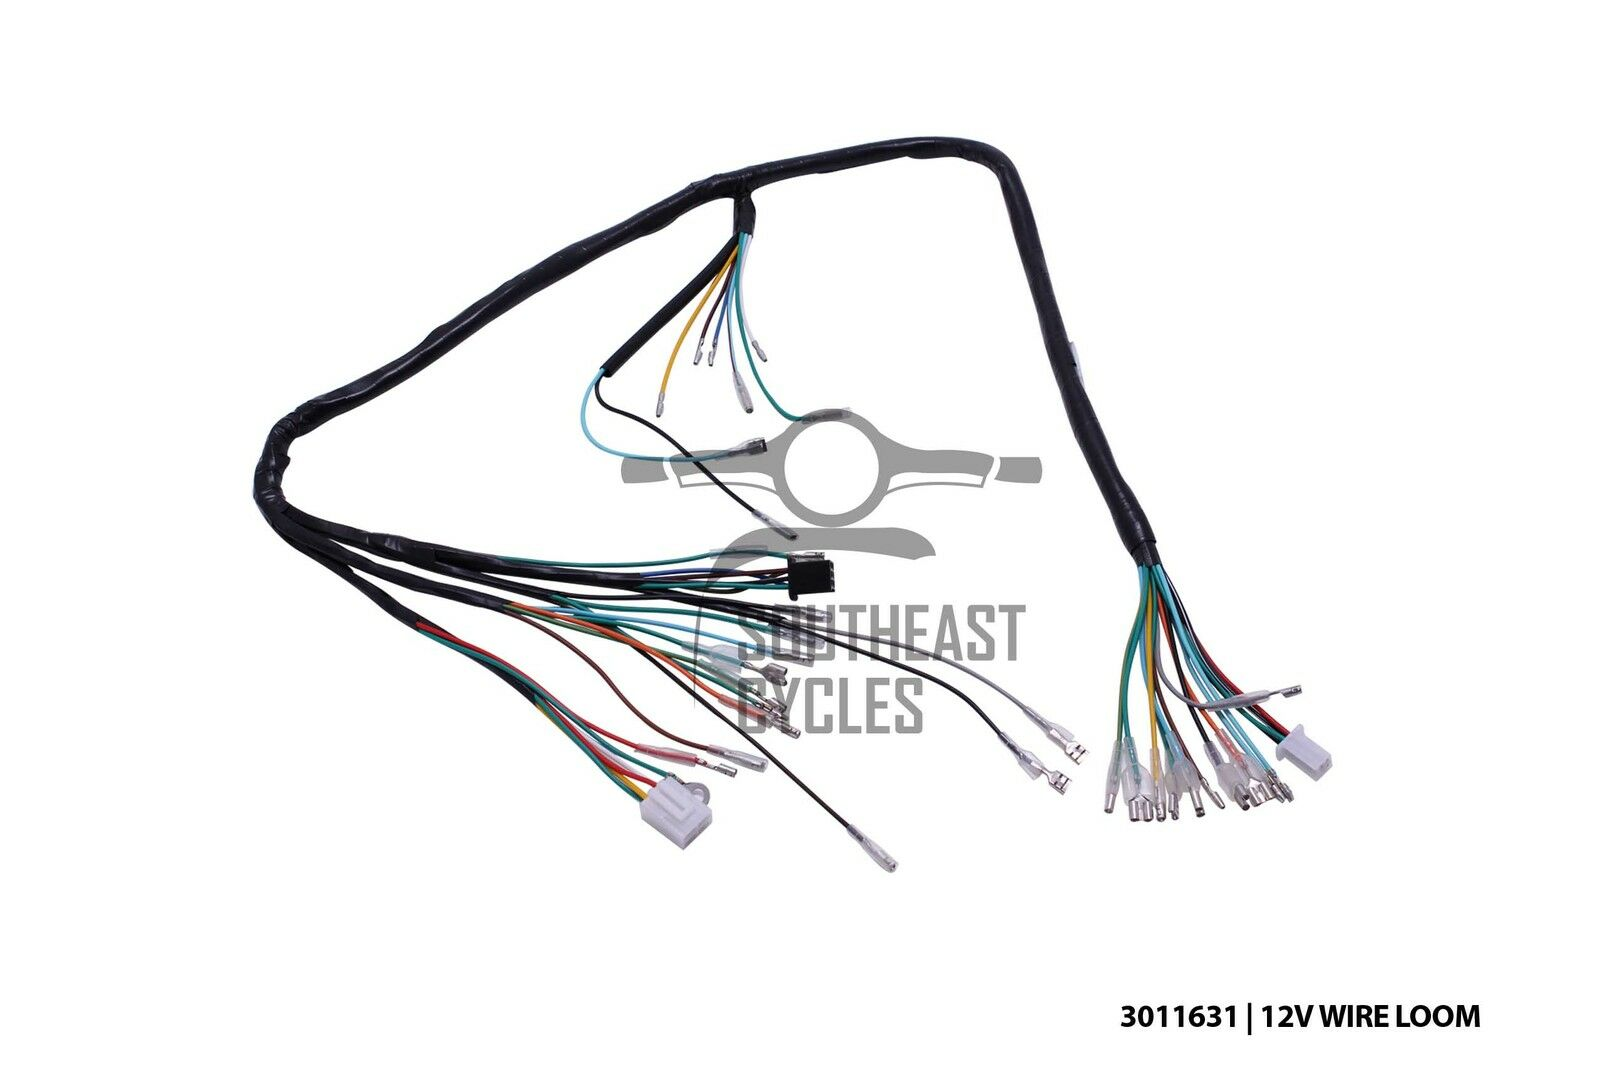 12v complete wire harness loom for honda cub c50  c70